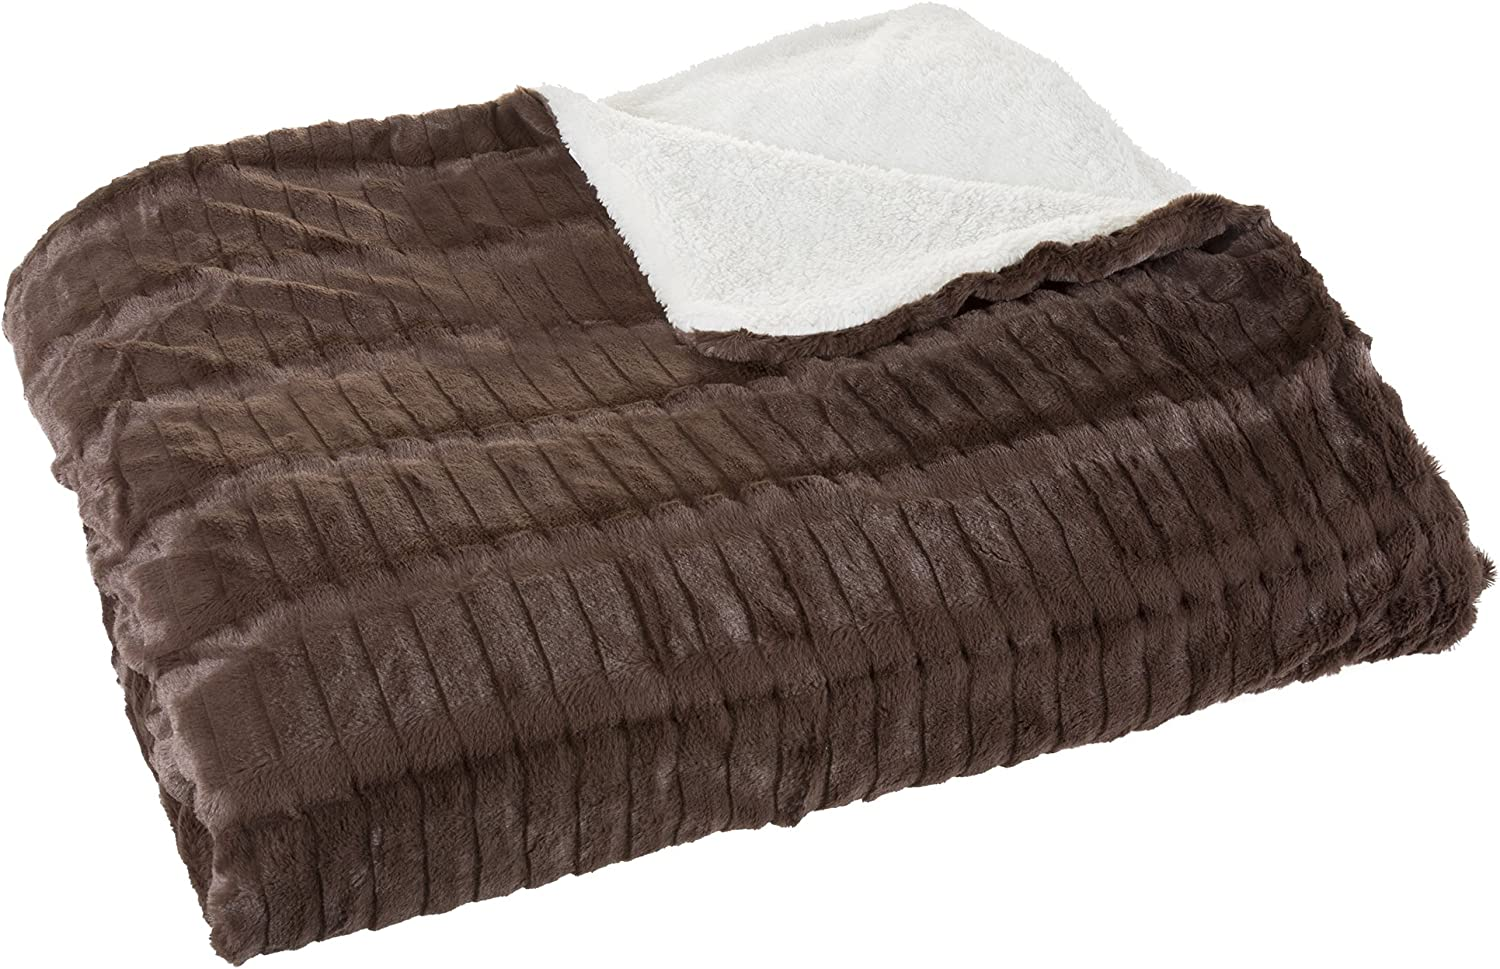 Bedford Home In Inexpensive stock Fleece and Sherpa King Chocolate - Blanket